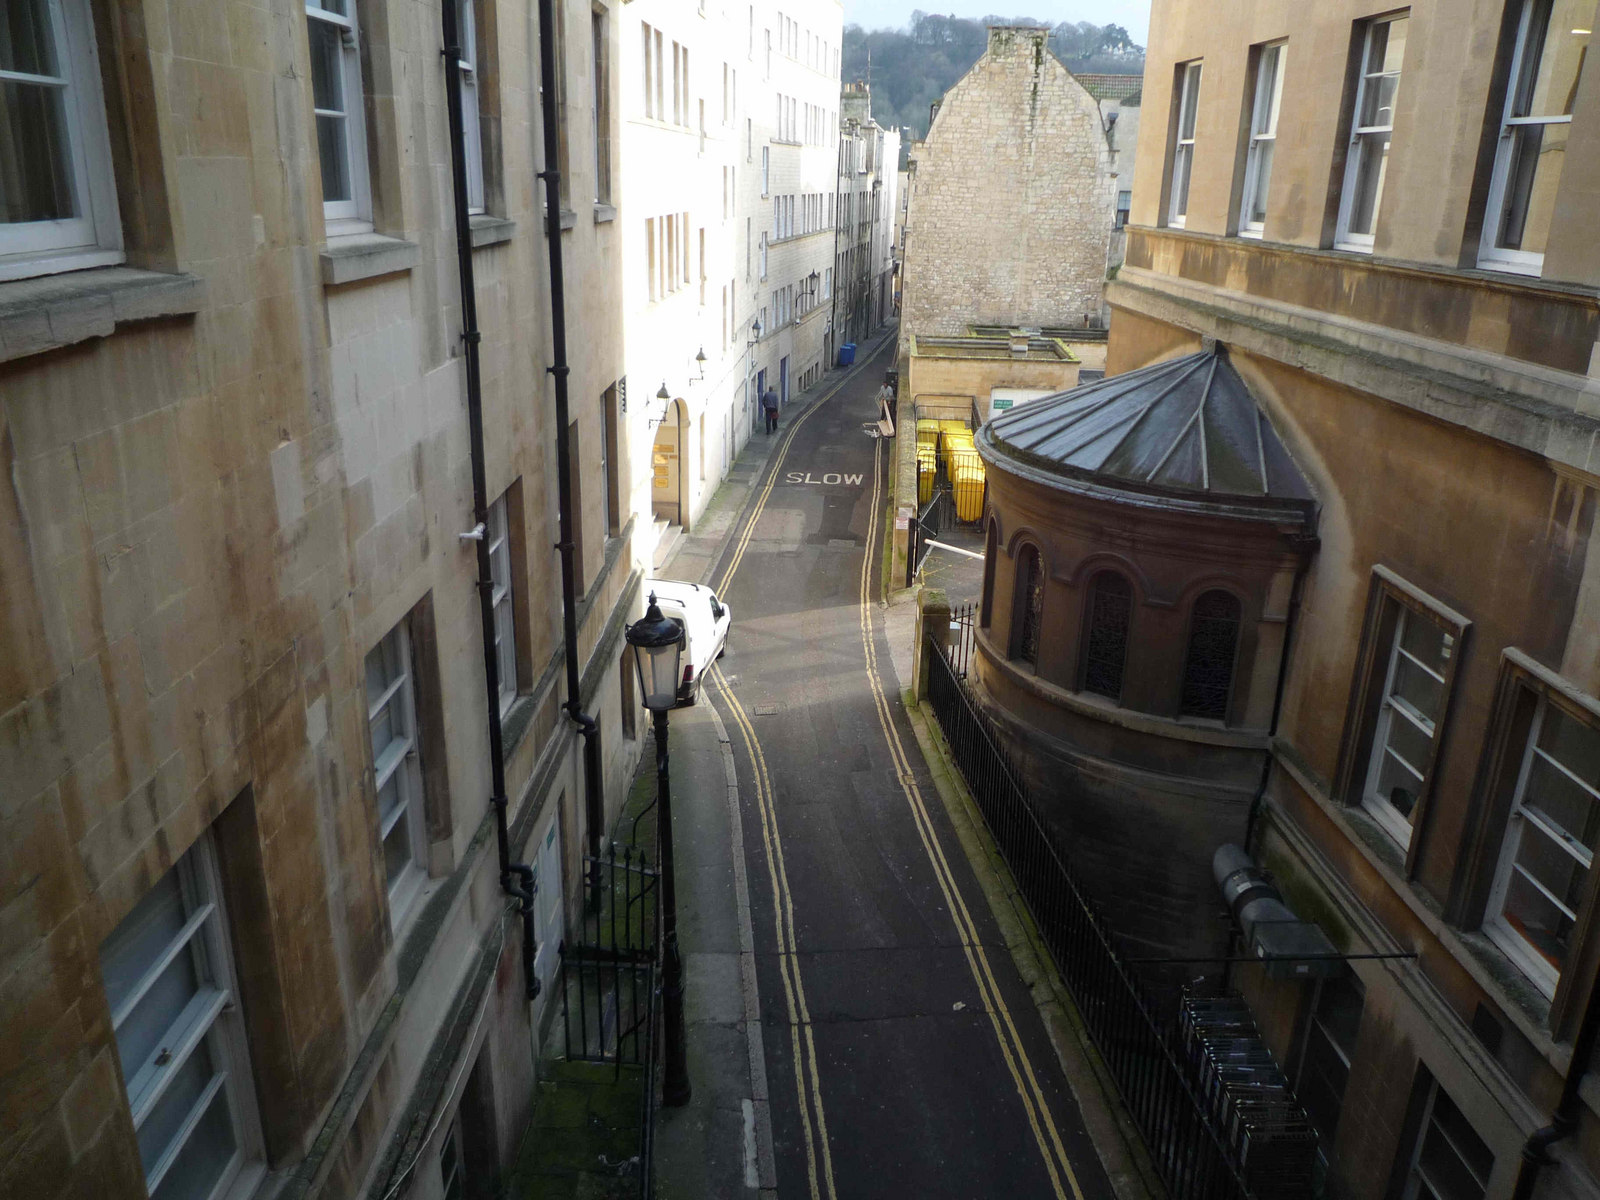 Https Commons Wikimedia Org Wiki File Narrow Lane In Bath Geograph Org Uk 1716012 Jpg